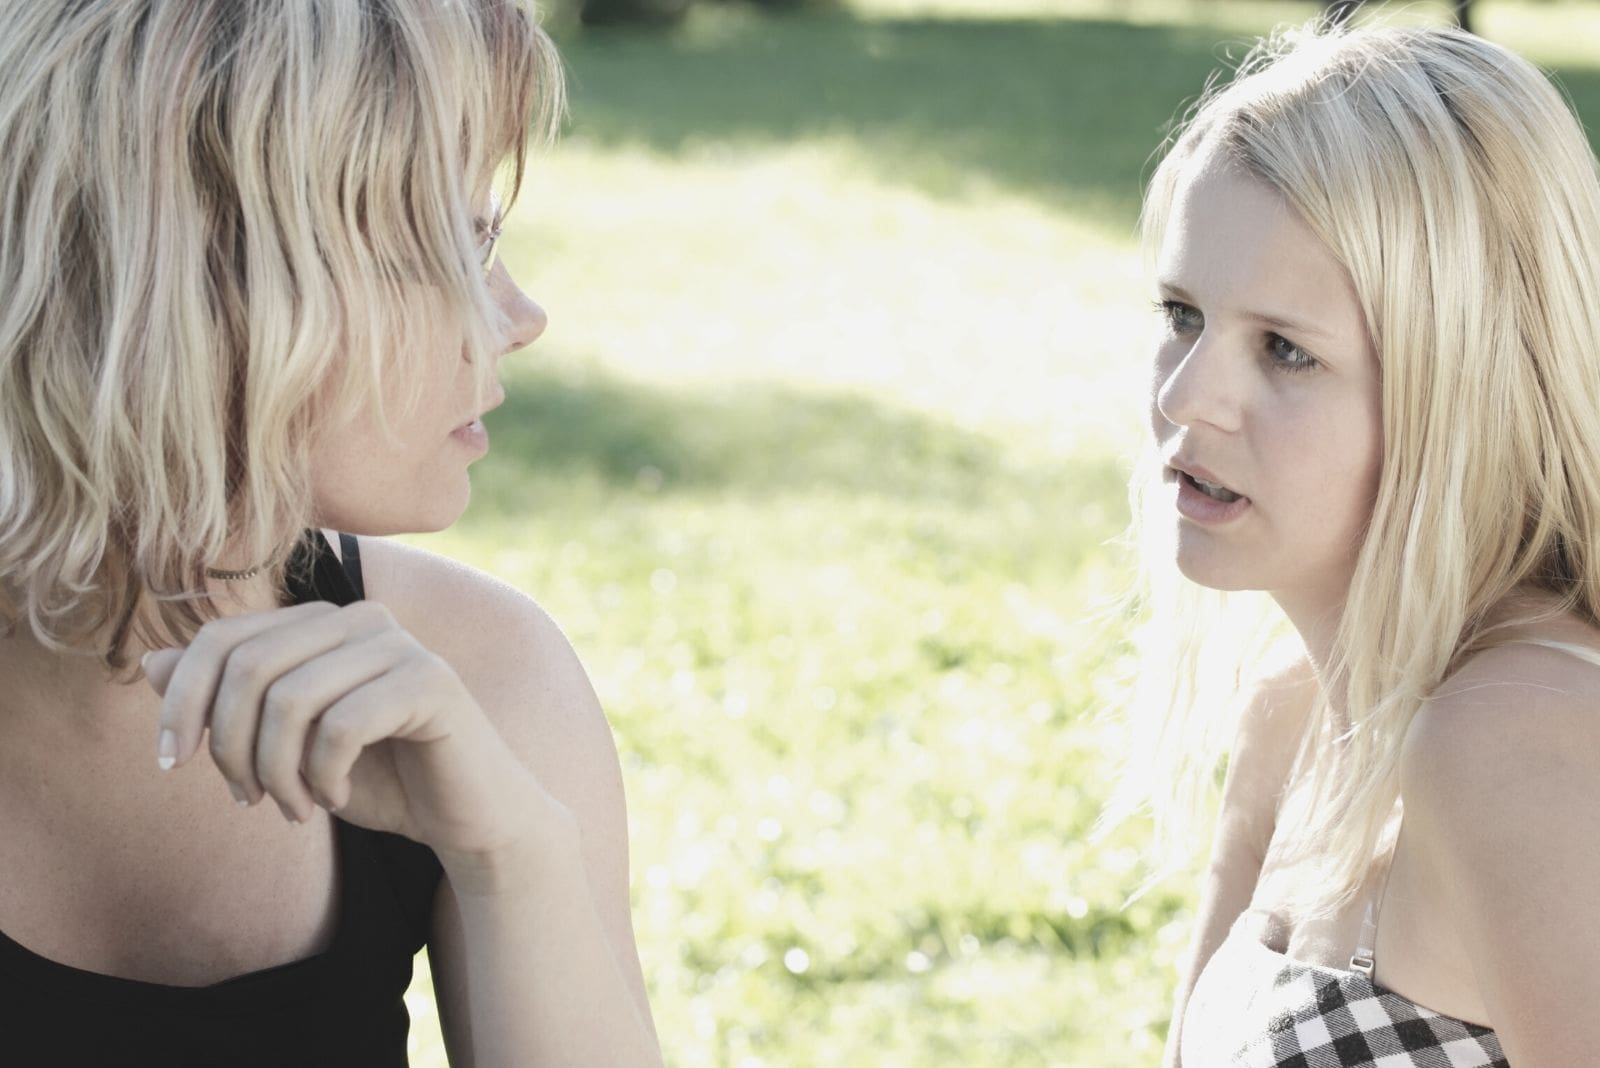 two young caucasian women talking seriously in the park in close up image